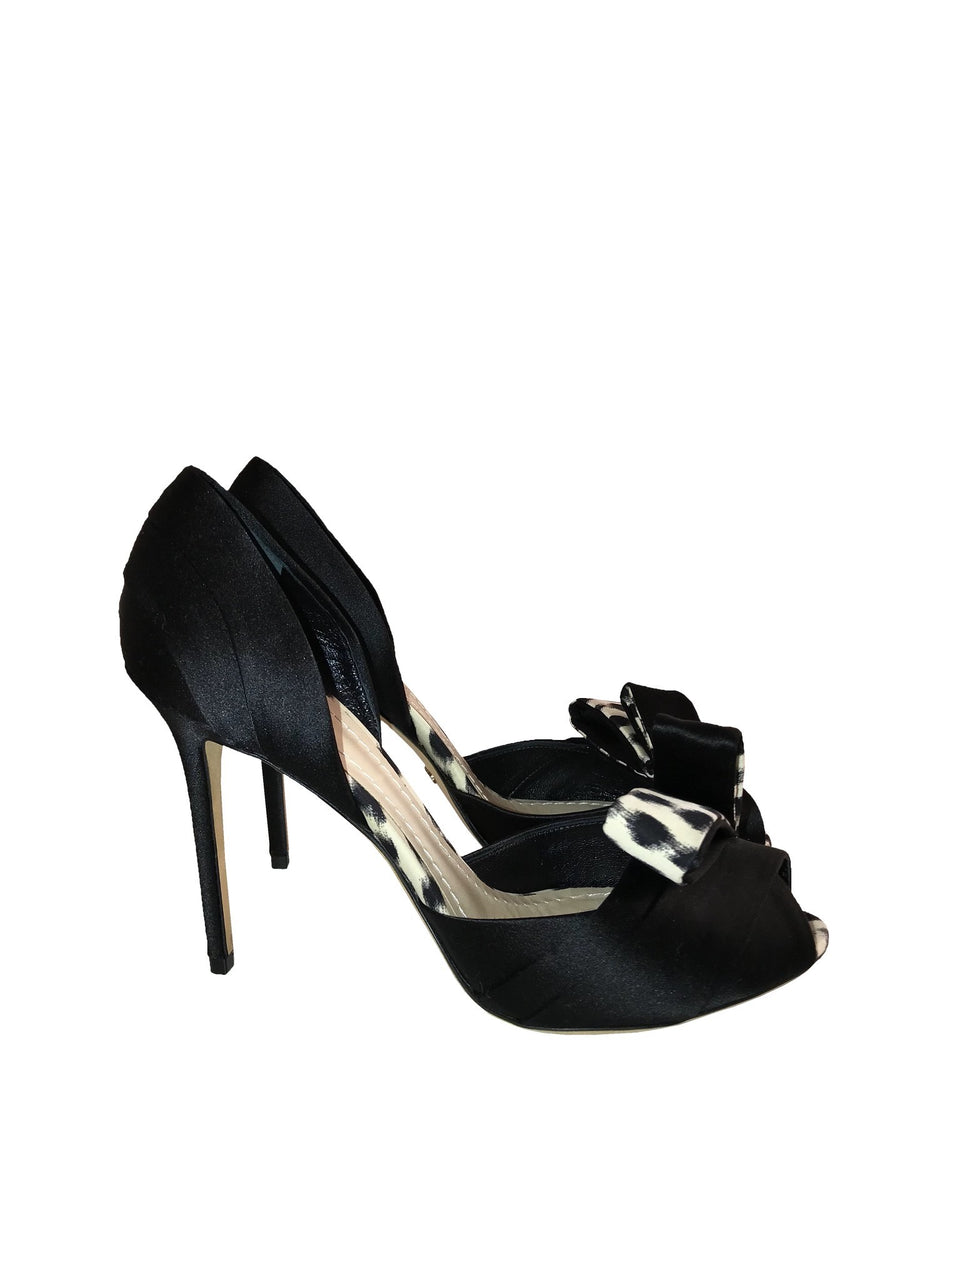 Satin Peep Toe Shoes w/ Contrast Detail